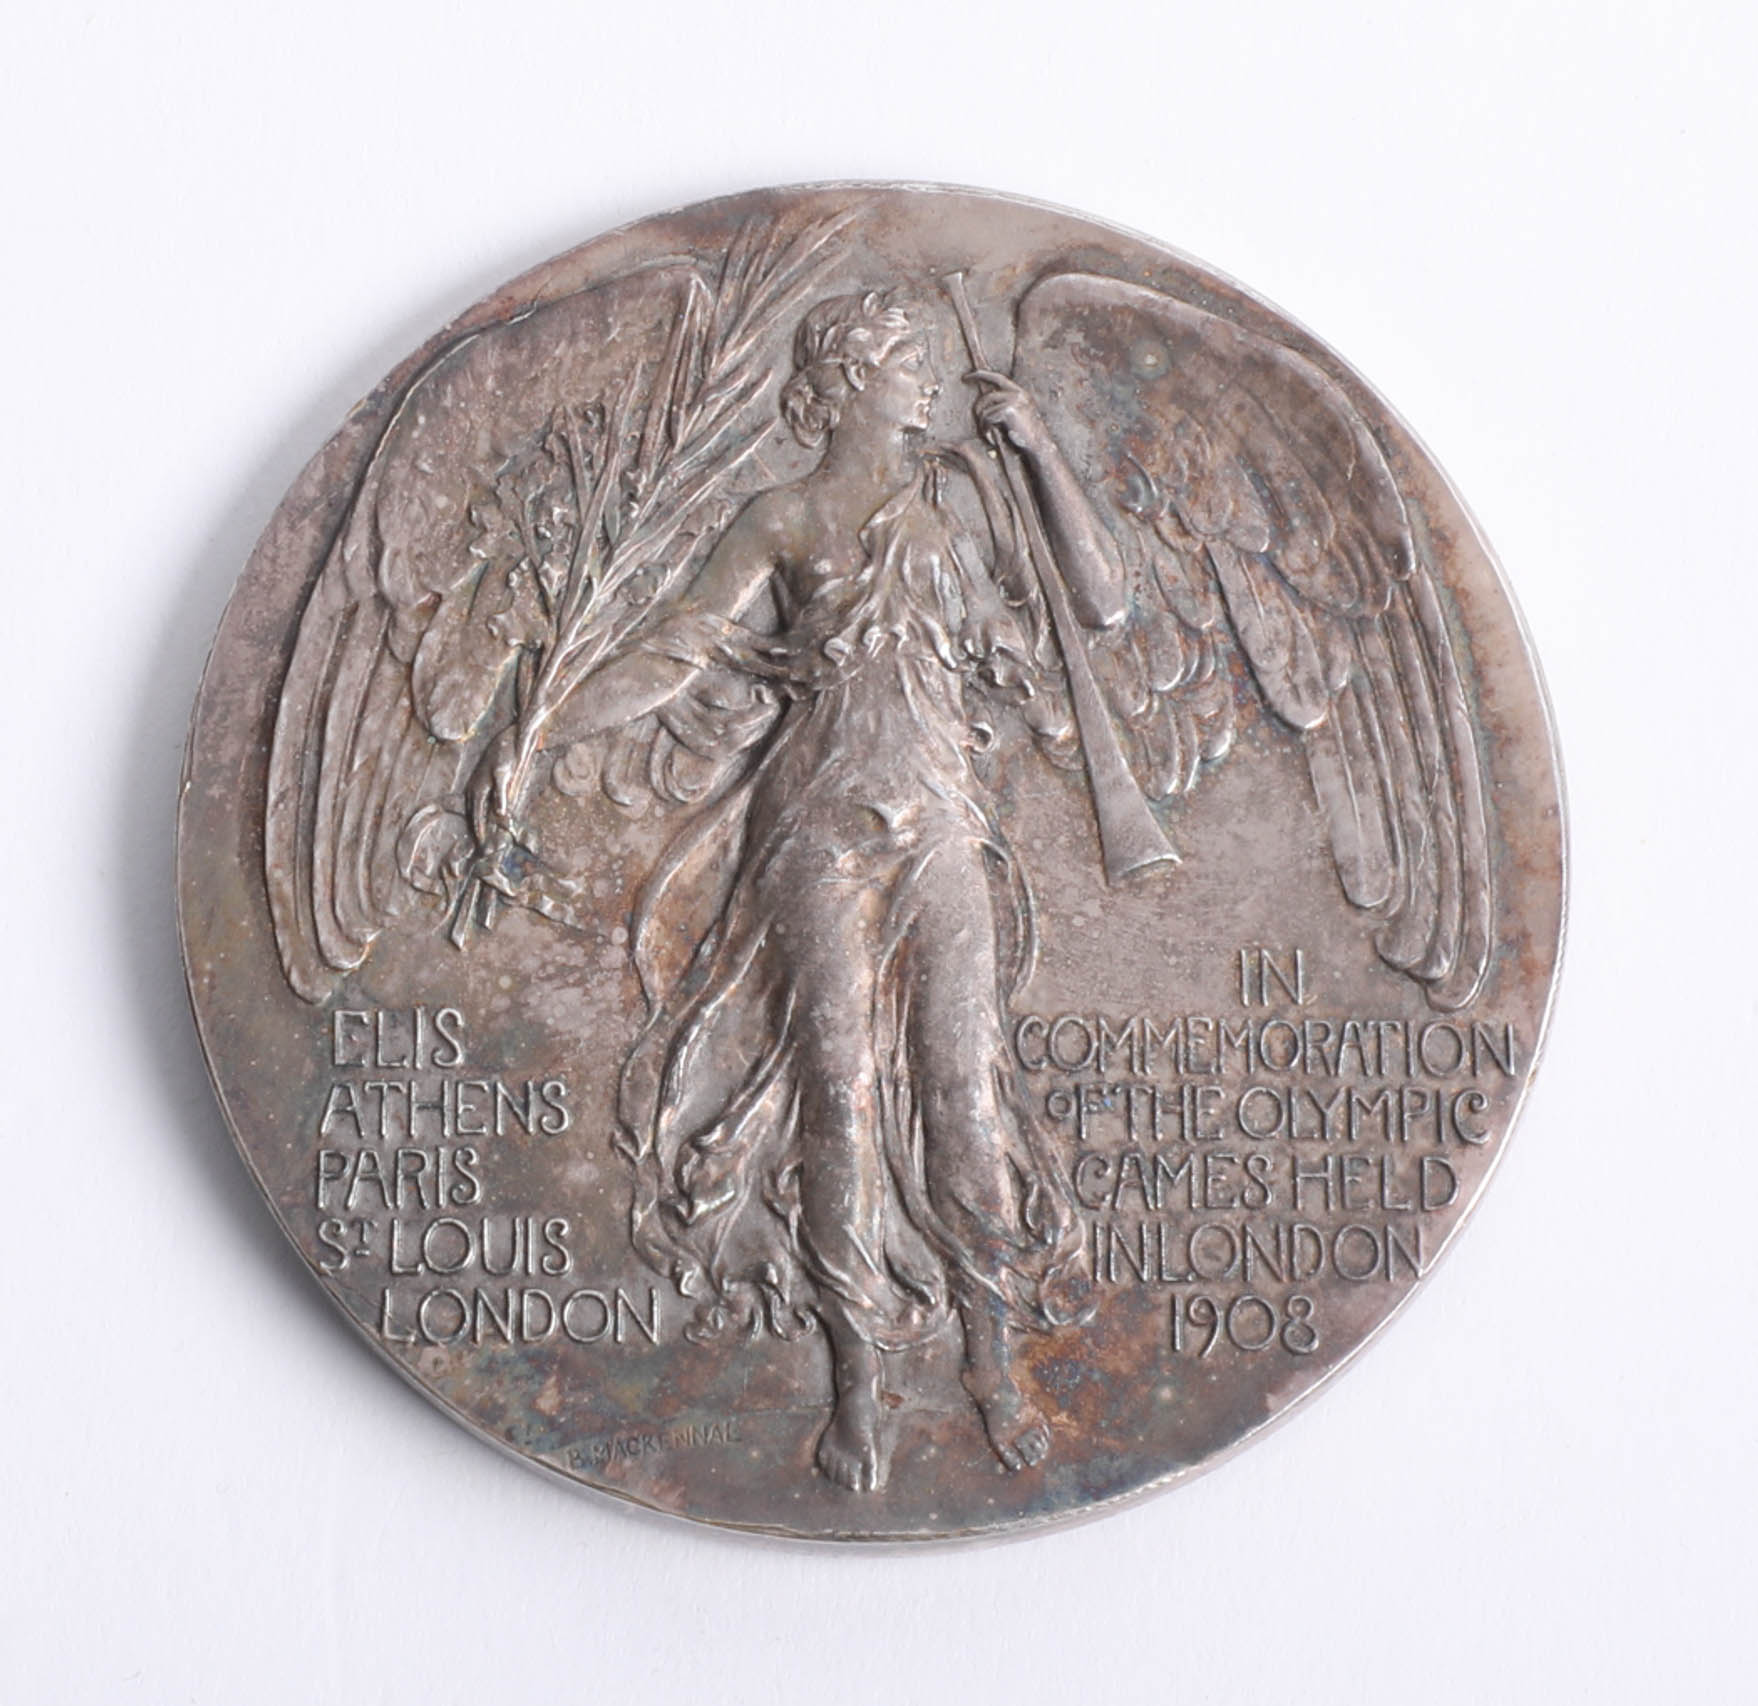 A London Olympics 1908 Judge`s commemorative medal by P. Vaughton, the obverse depicting 'Flame' - Image 3 of 4